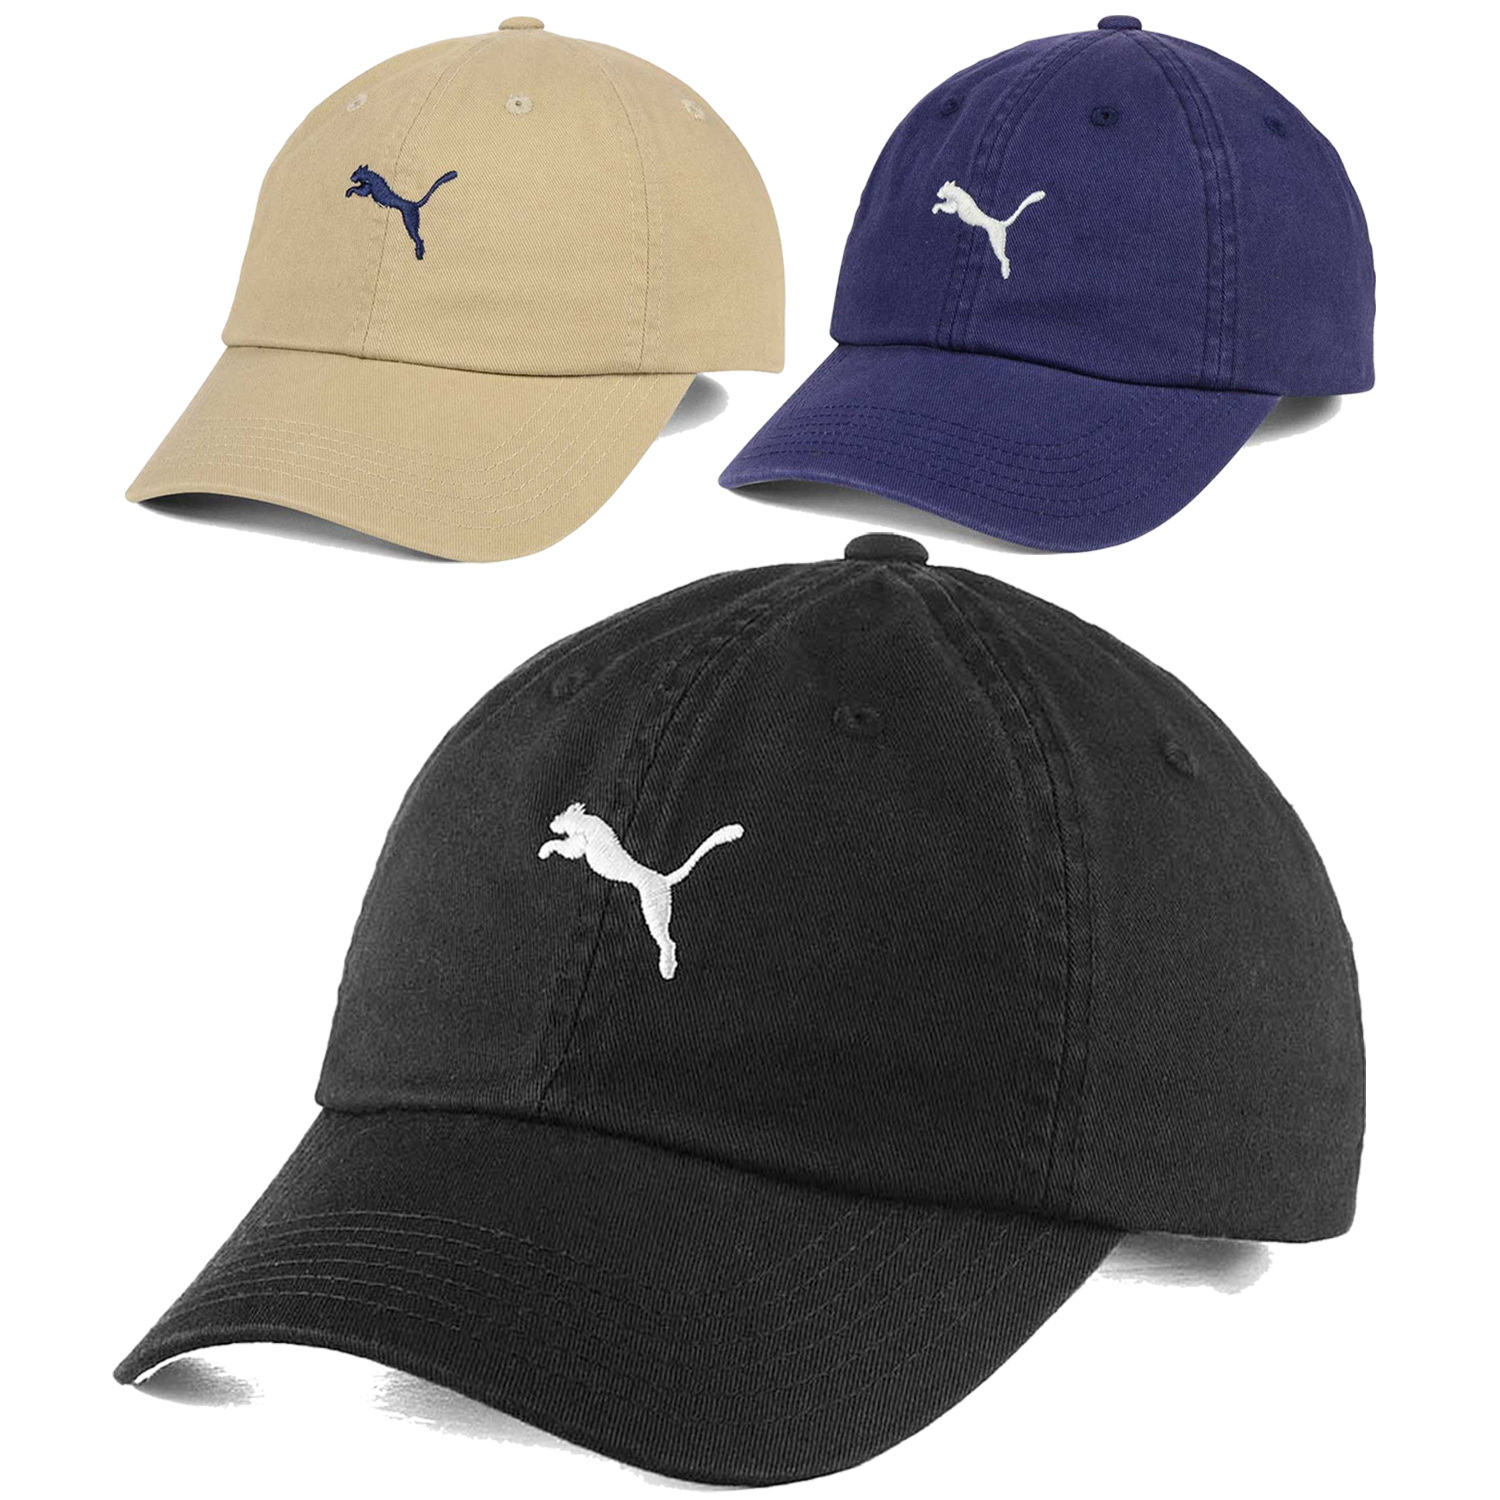 Details about Puma Leaping Cat Logo Polo Leather Strapback Washed Slouch  Dad Golf Cap Hat NEW 4ecff48ff88